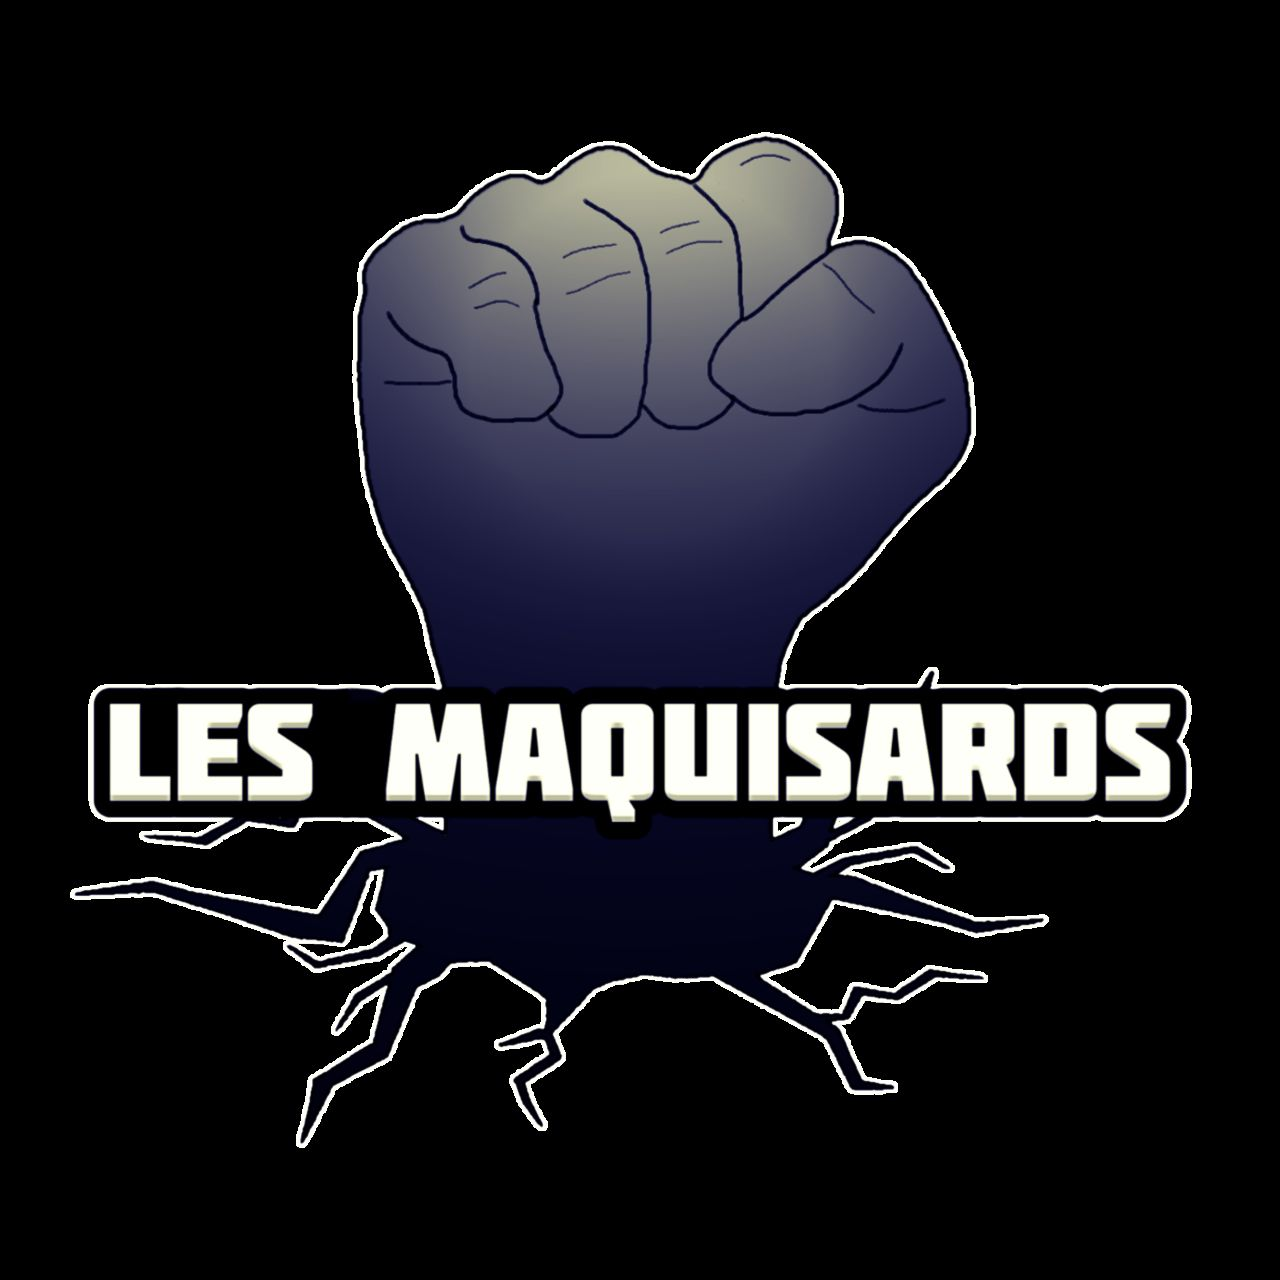 Les Maquisards